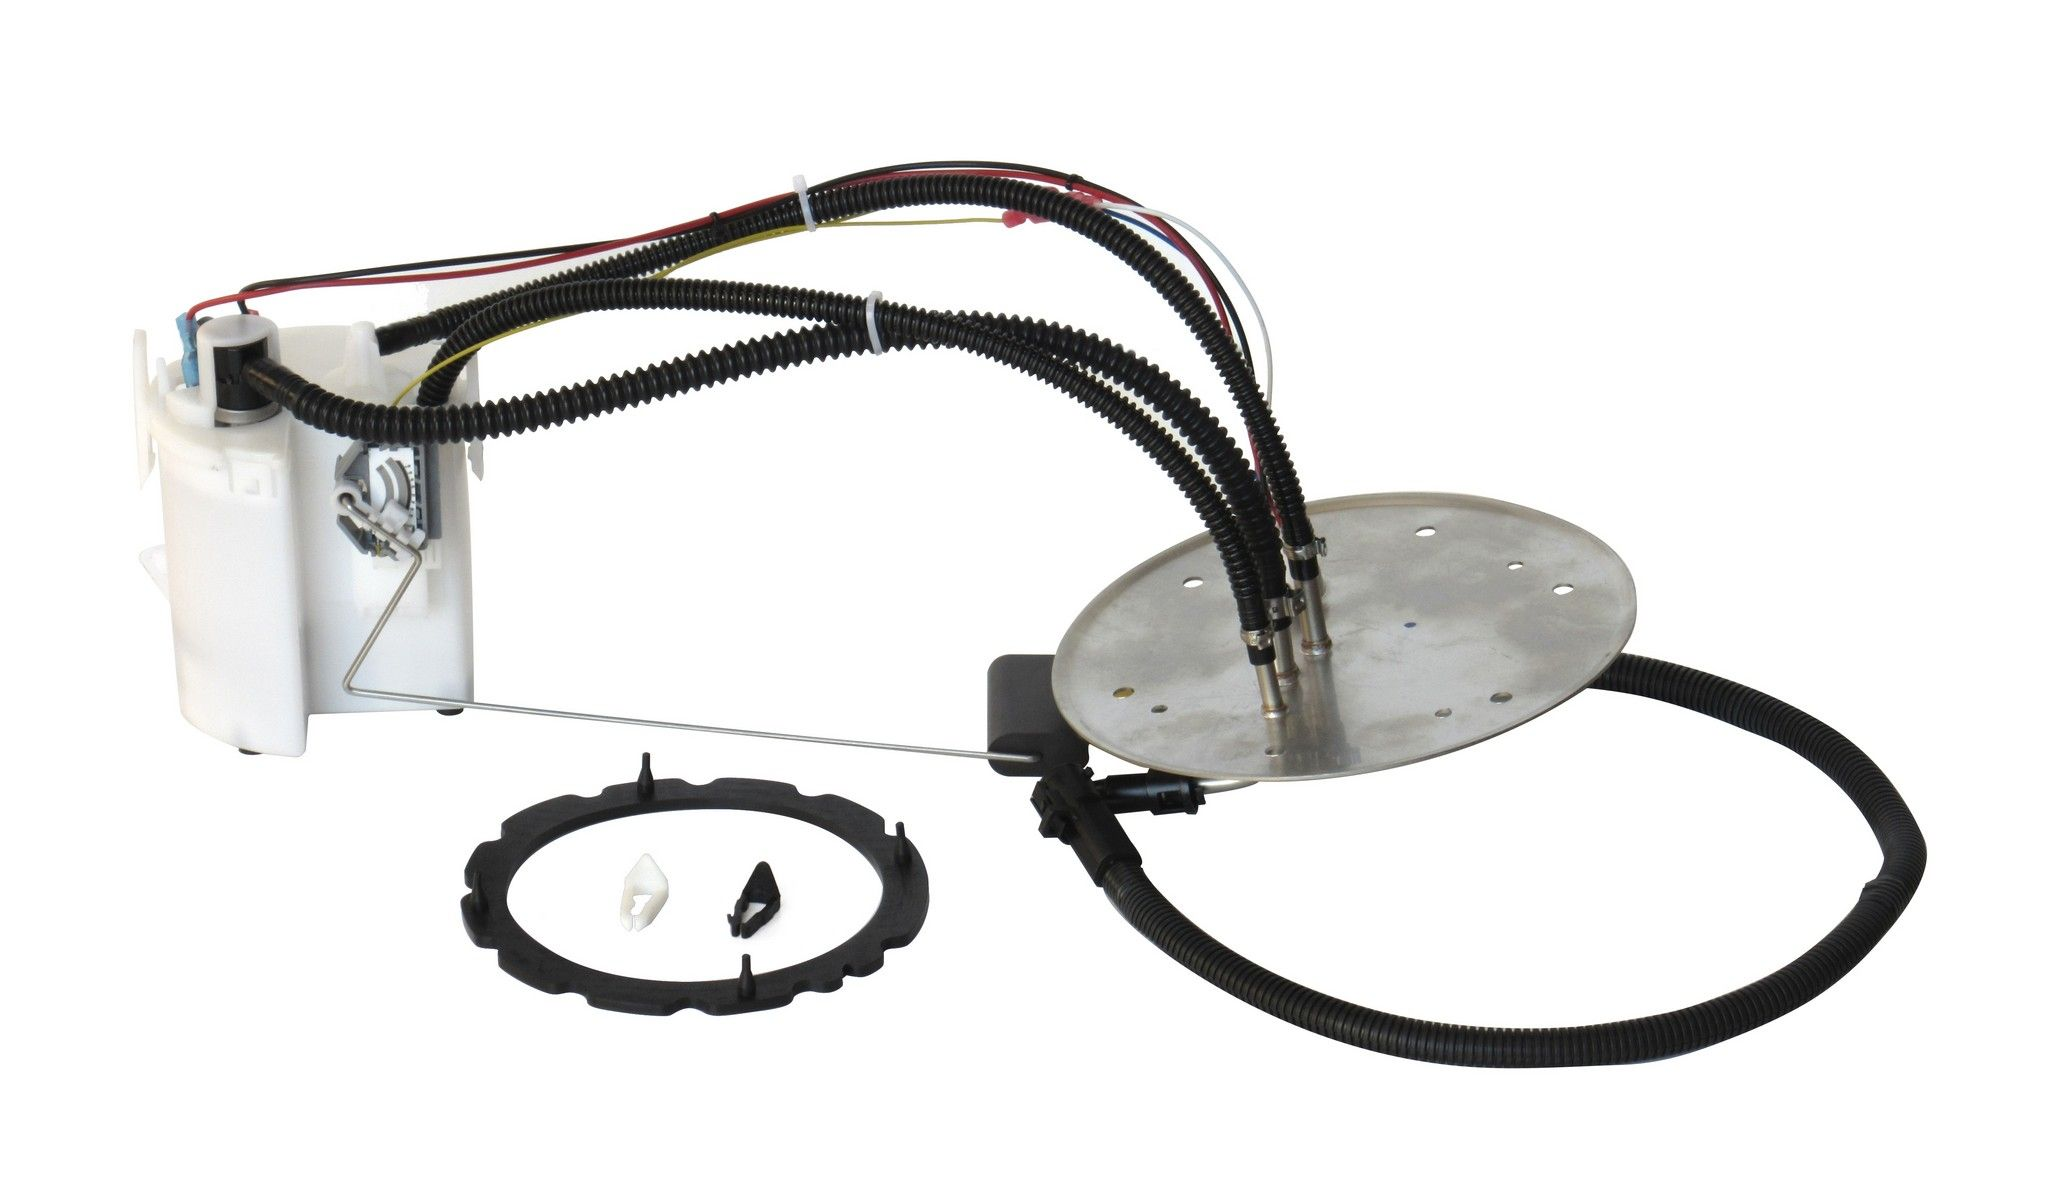 Ford F 550 Super Duty Fuel Pump Module Assembly Replacement Airtex Sending Unit Wiring 1999 10 Cyl 68l Autobest F1292a W 40 Gal Rear Tank Includes Float